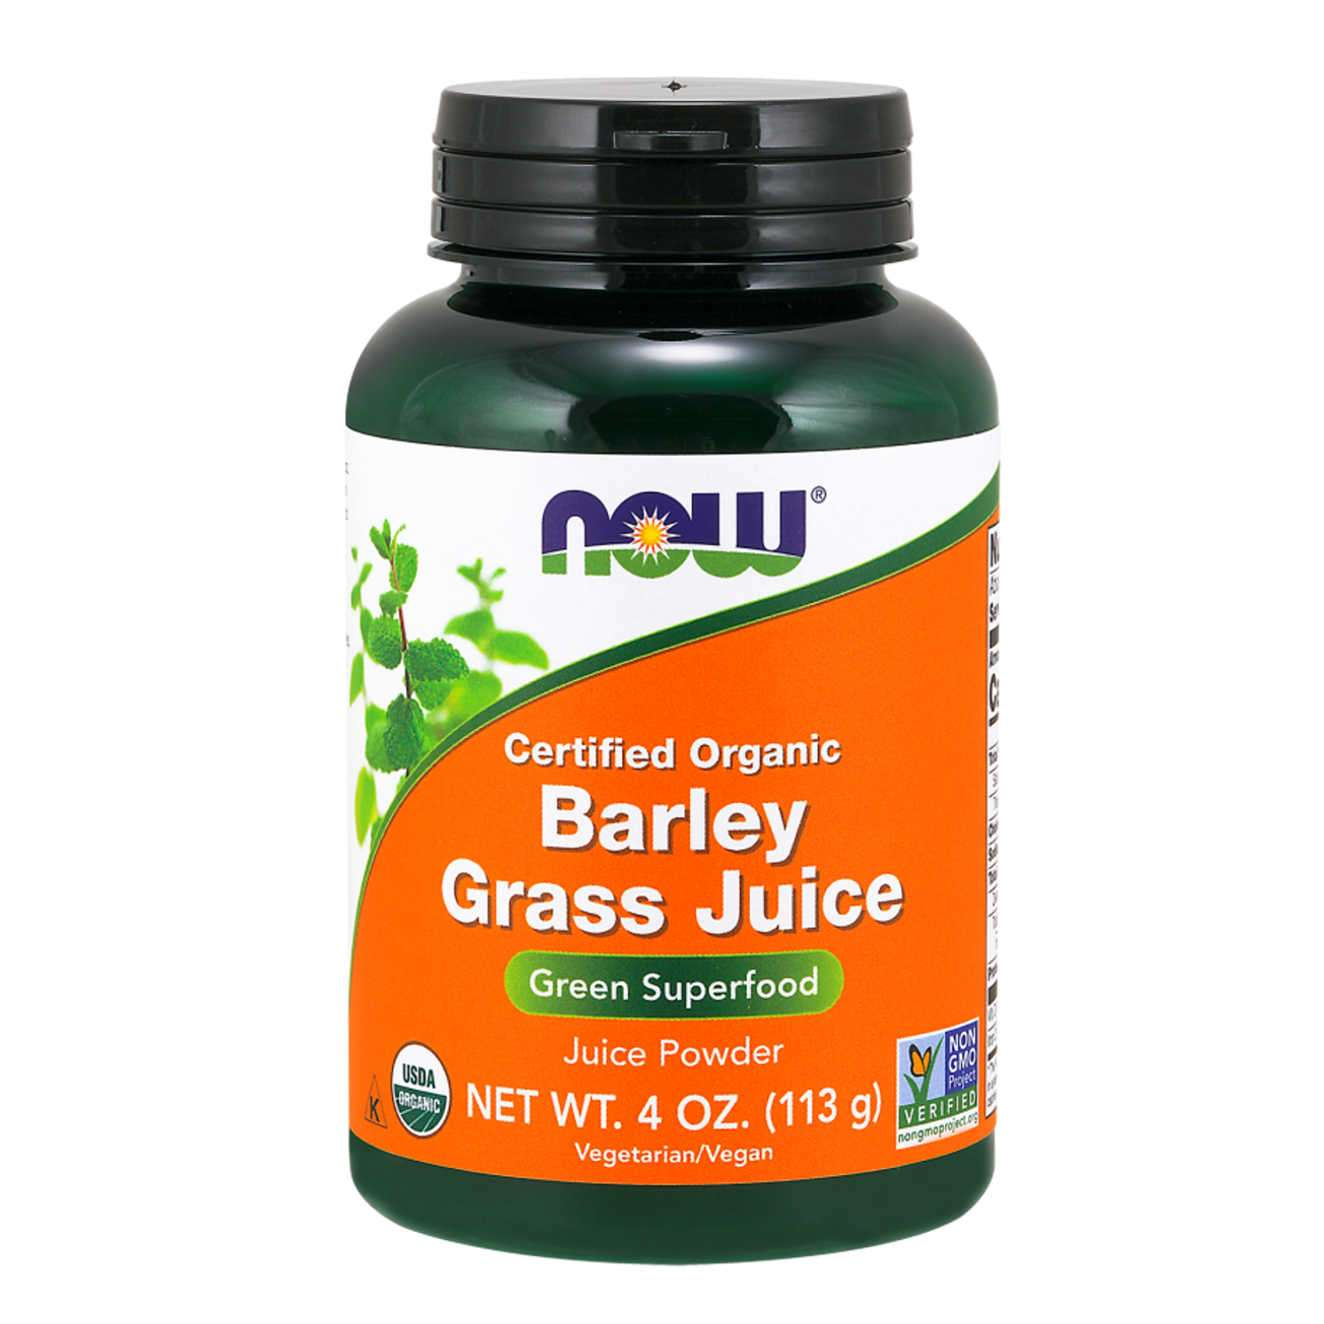 BARLEY GRASS JUICE - 113g